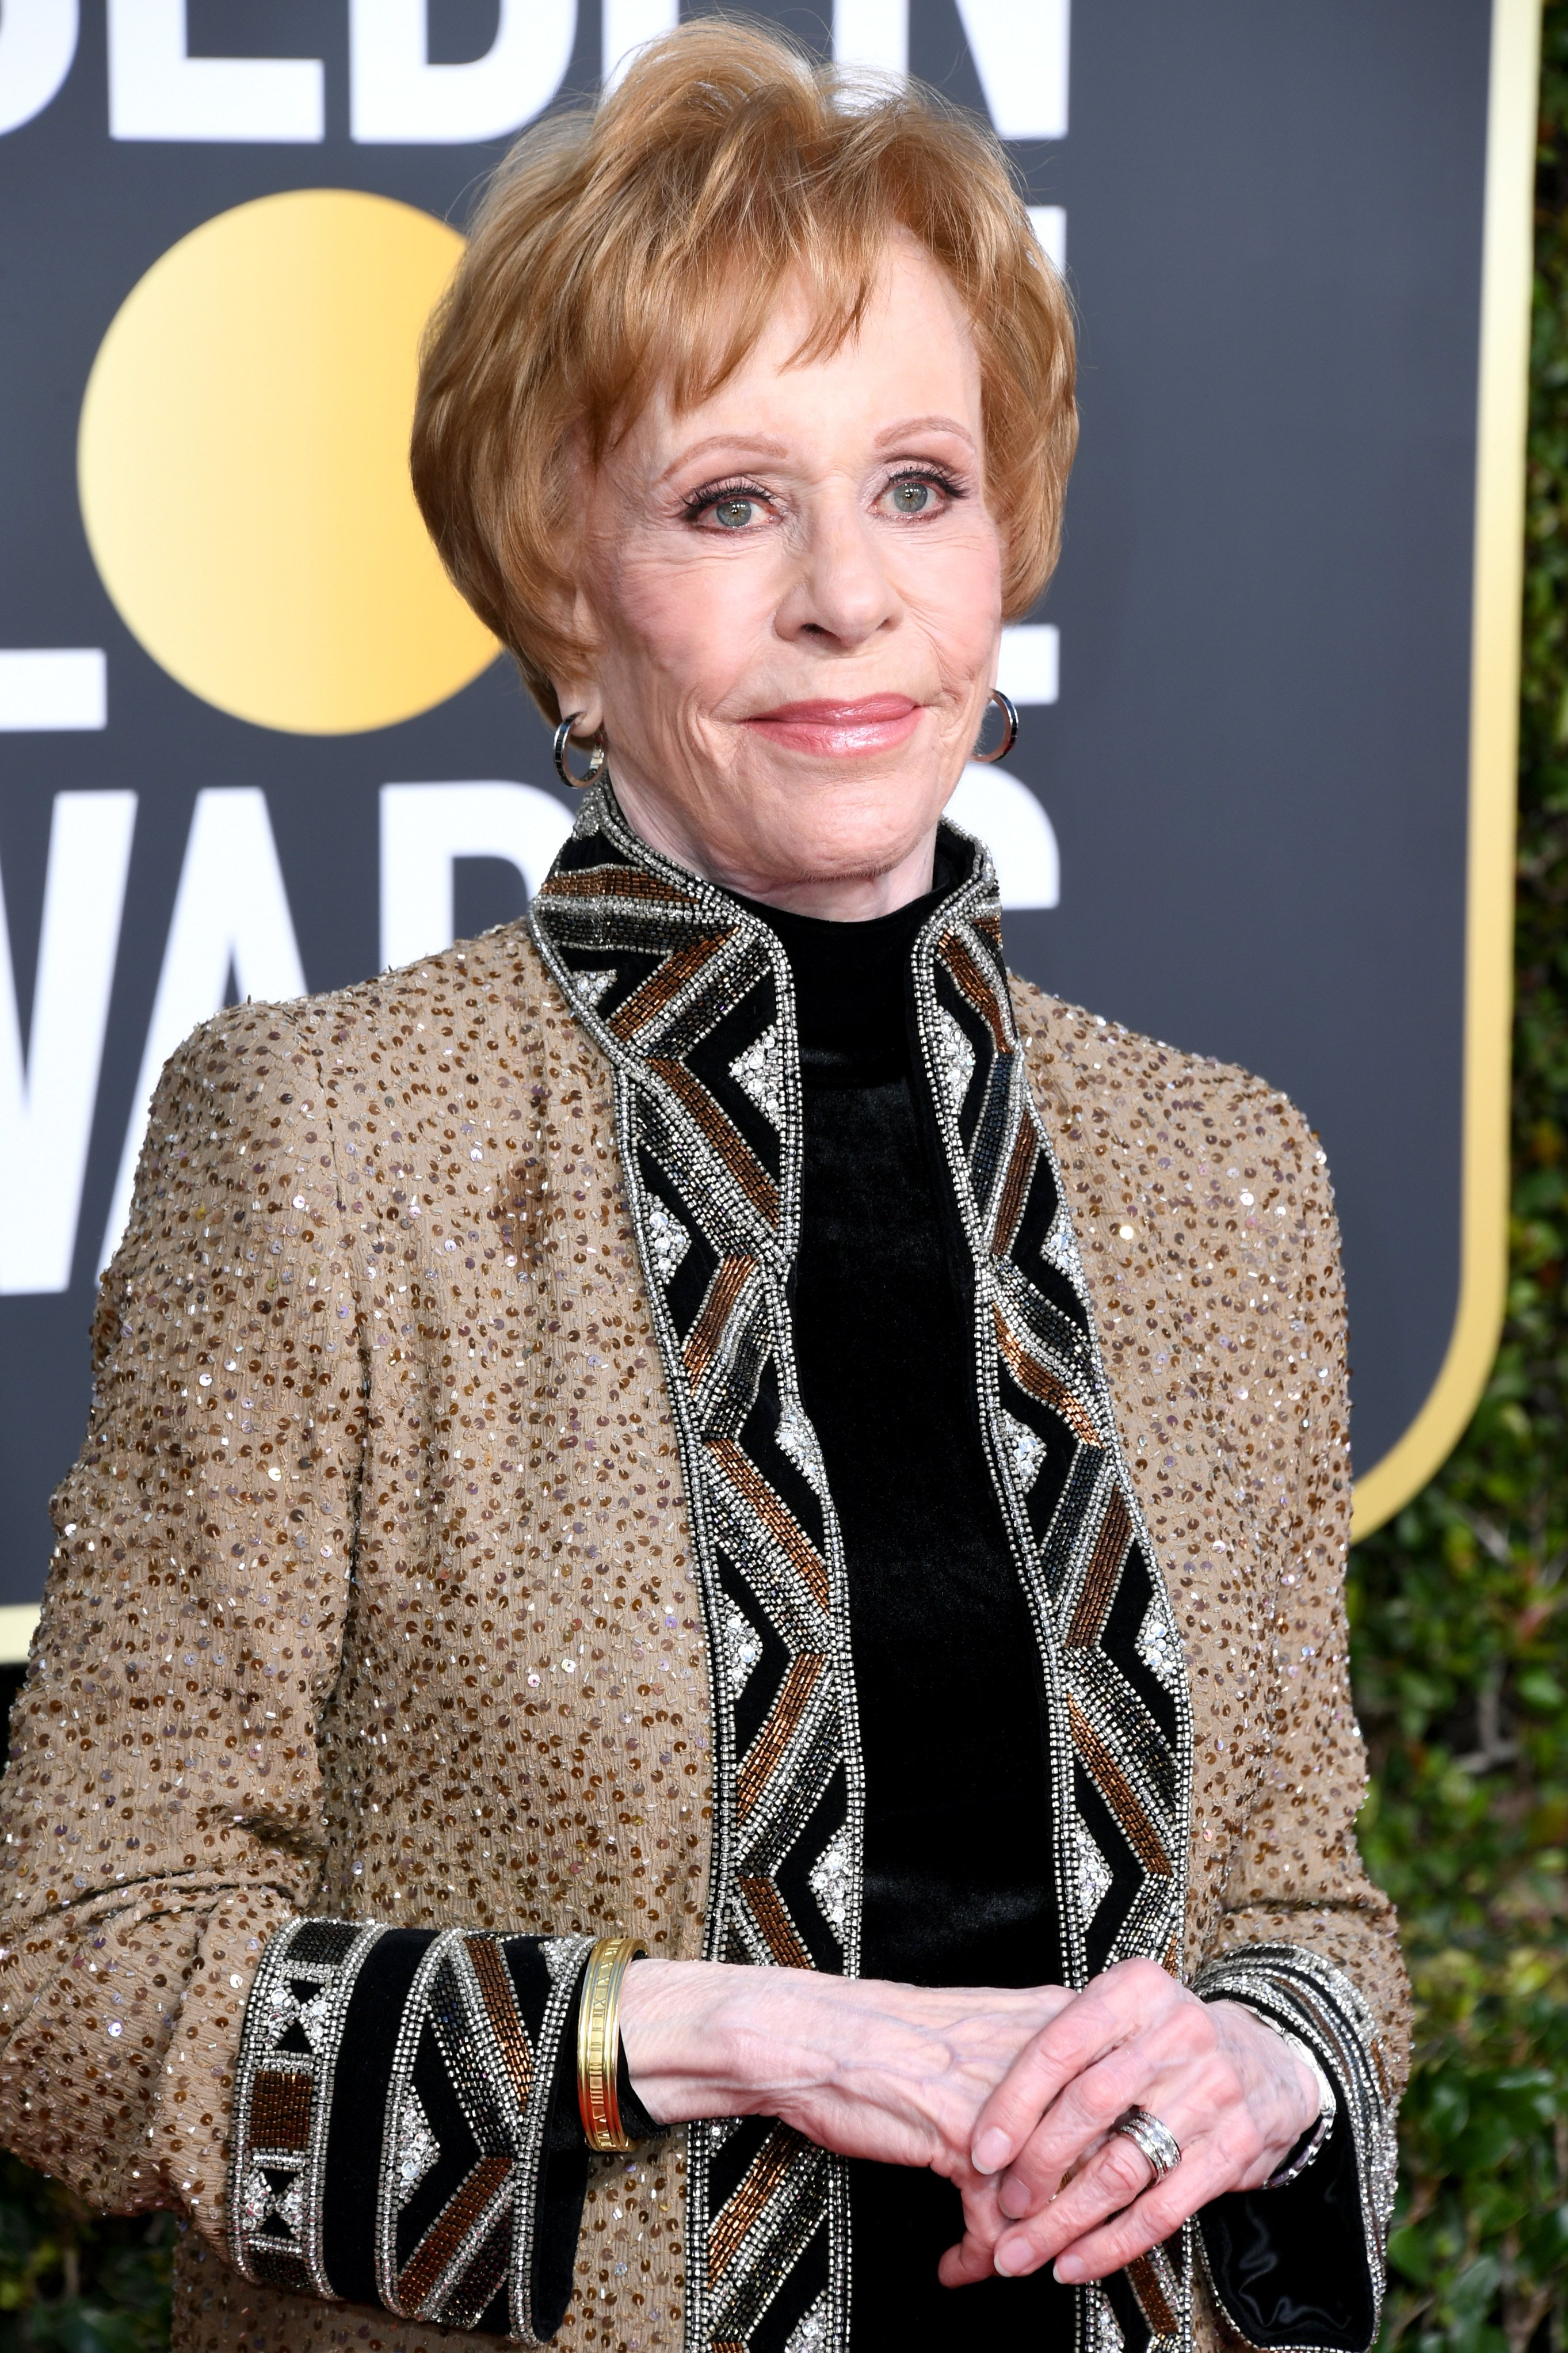 Carol Burnett attends the 76th Annual Golden Globe Awards on January 6, 2019, in Beverly Hills, California. | Source: Getty Images.